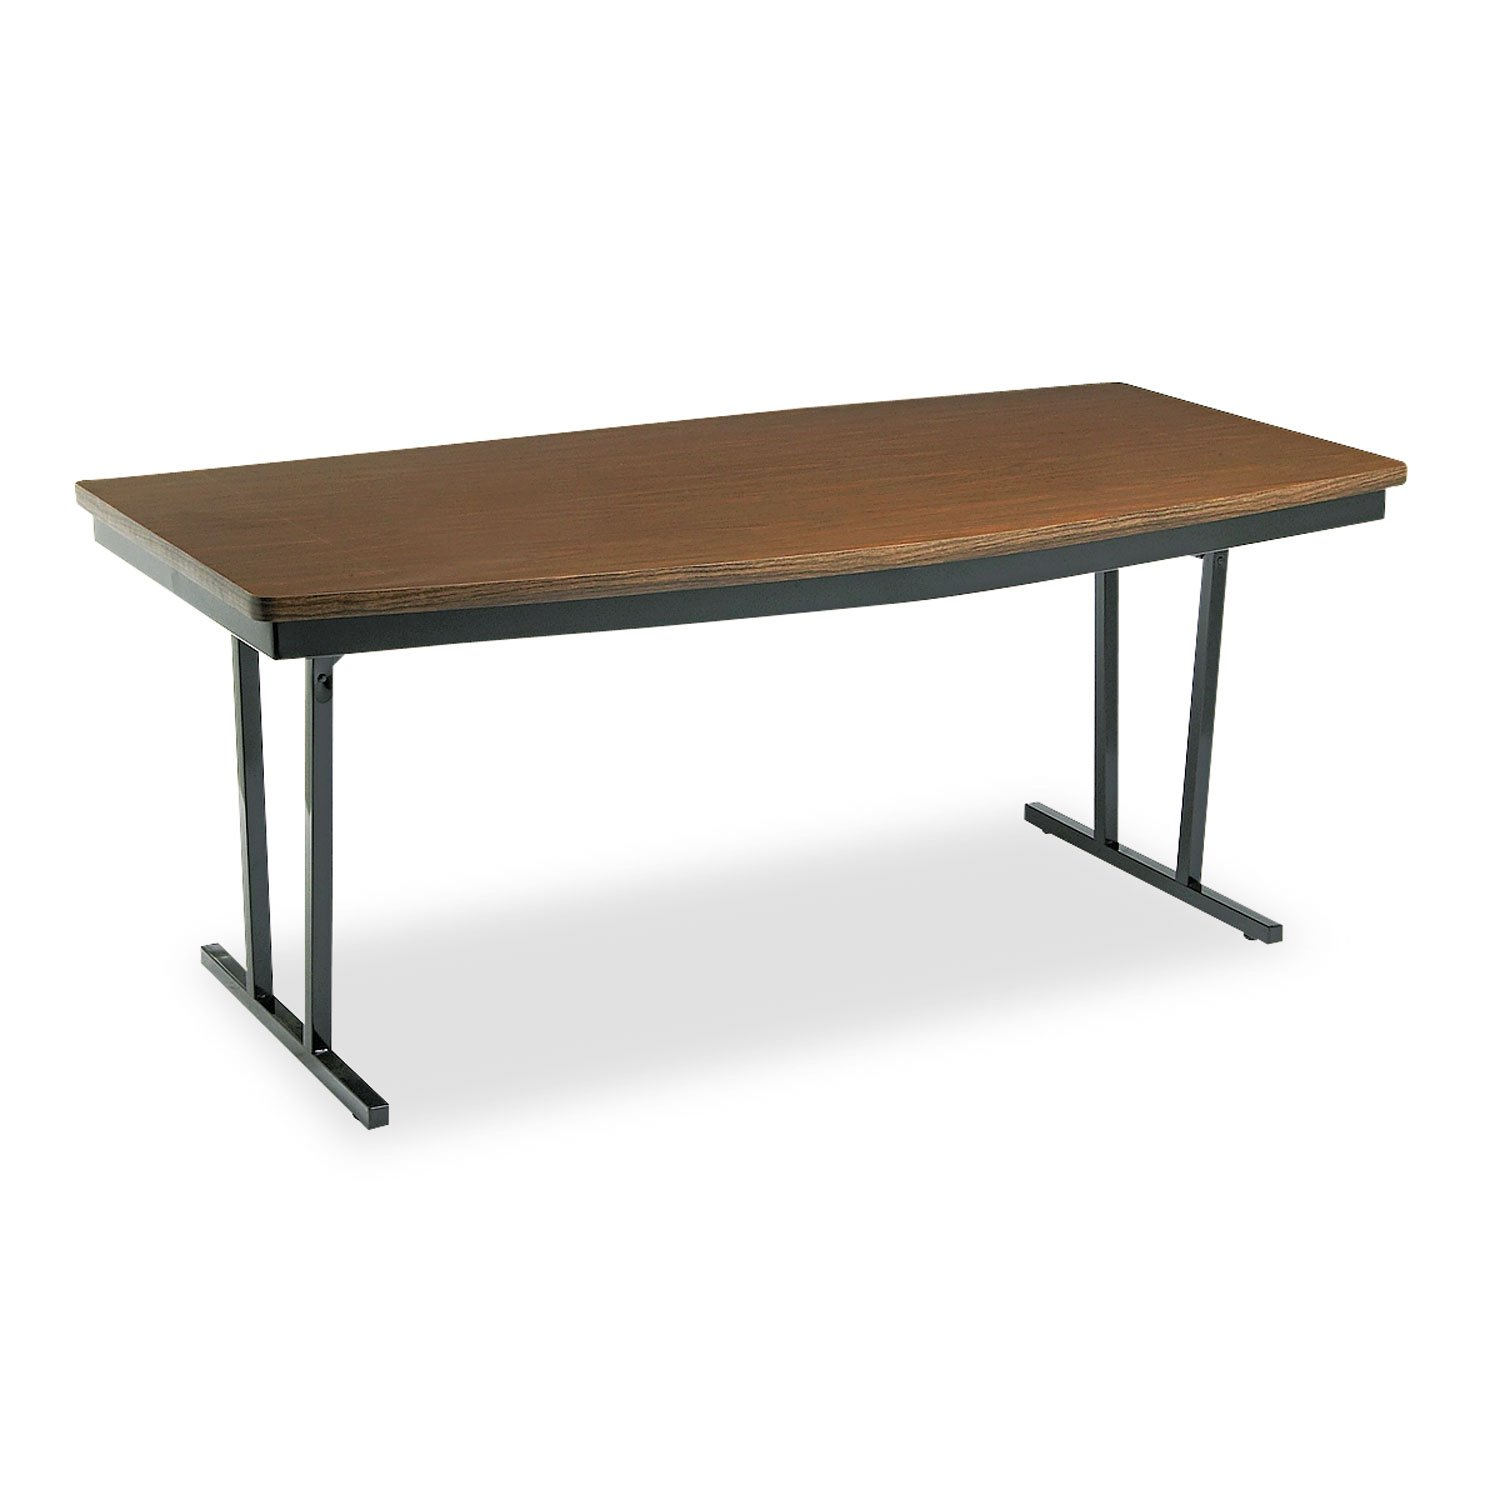 Barricks ECT366 72 by 36 by 30-Inch Economy Press-O-Matic Conference Folding Boat Table, Walnut